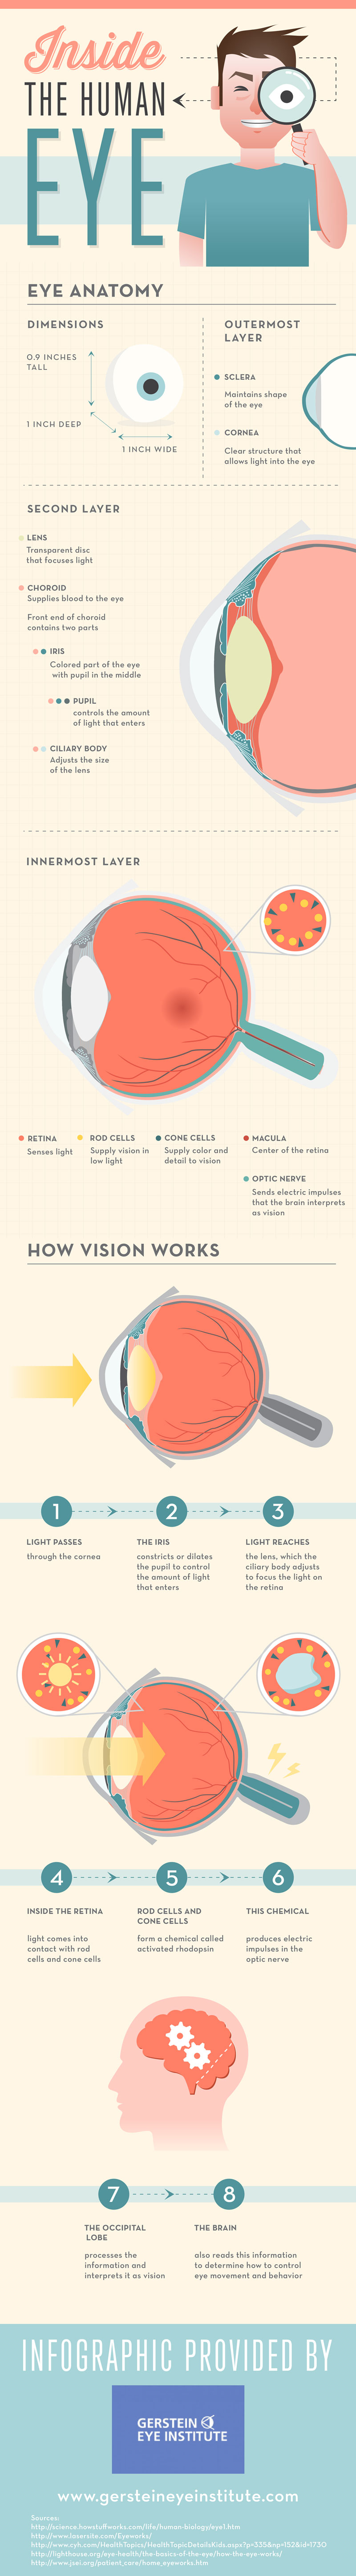 Look Inside The Human Eye Infographic